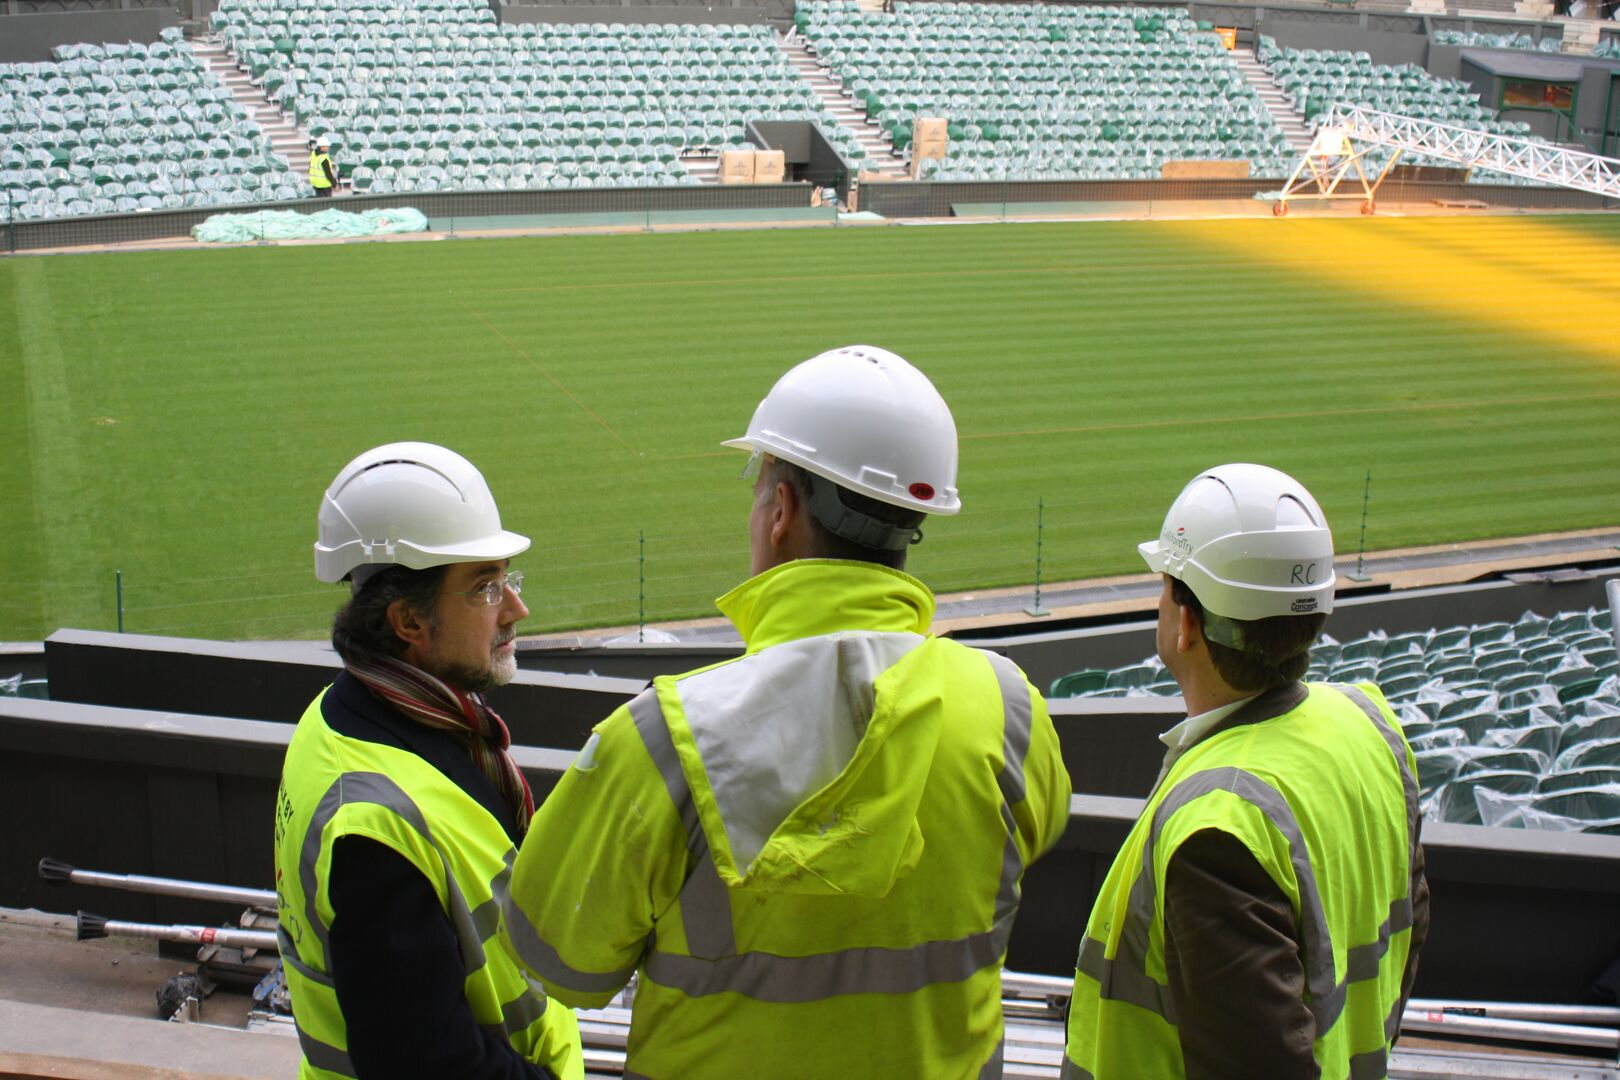 Contractors on site at a stadium